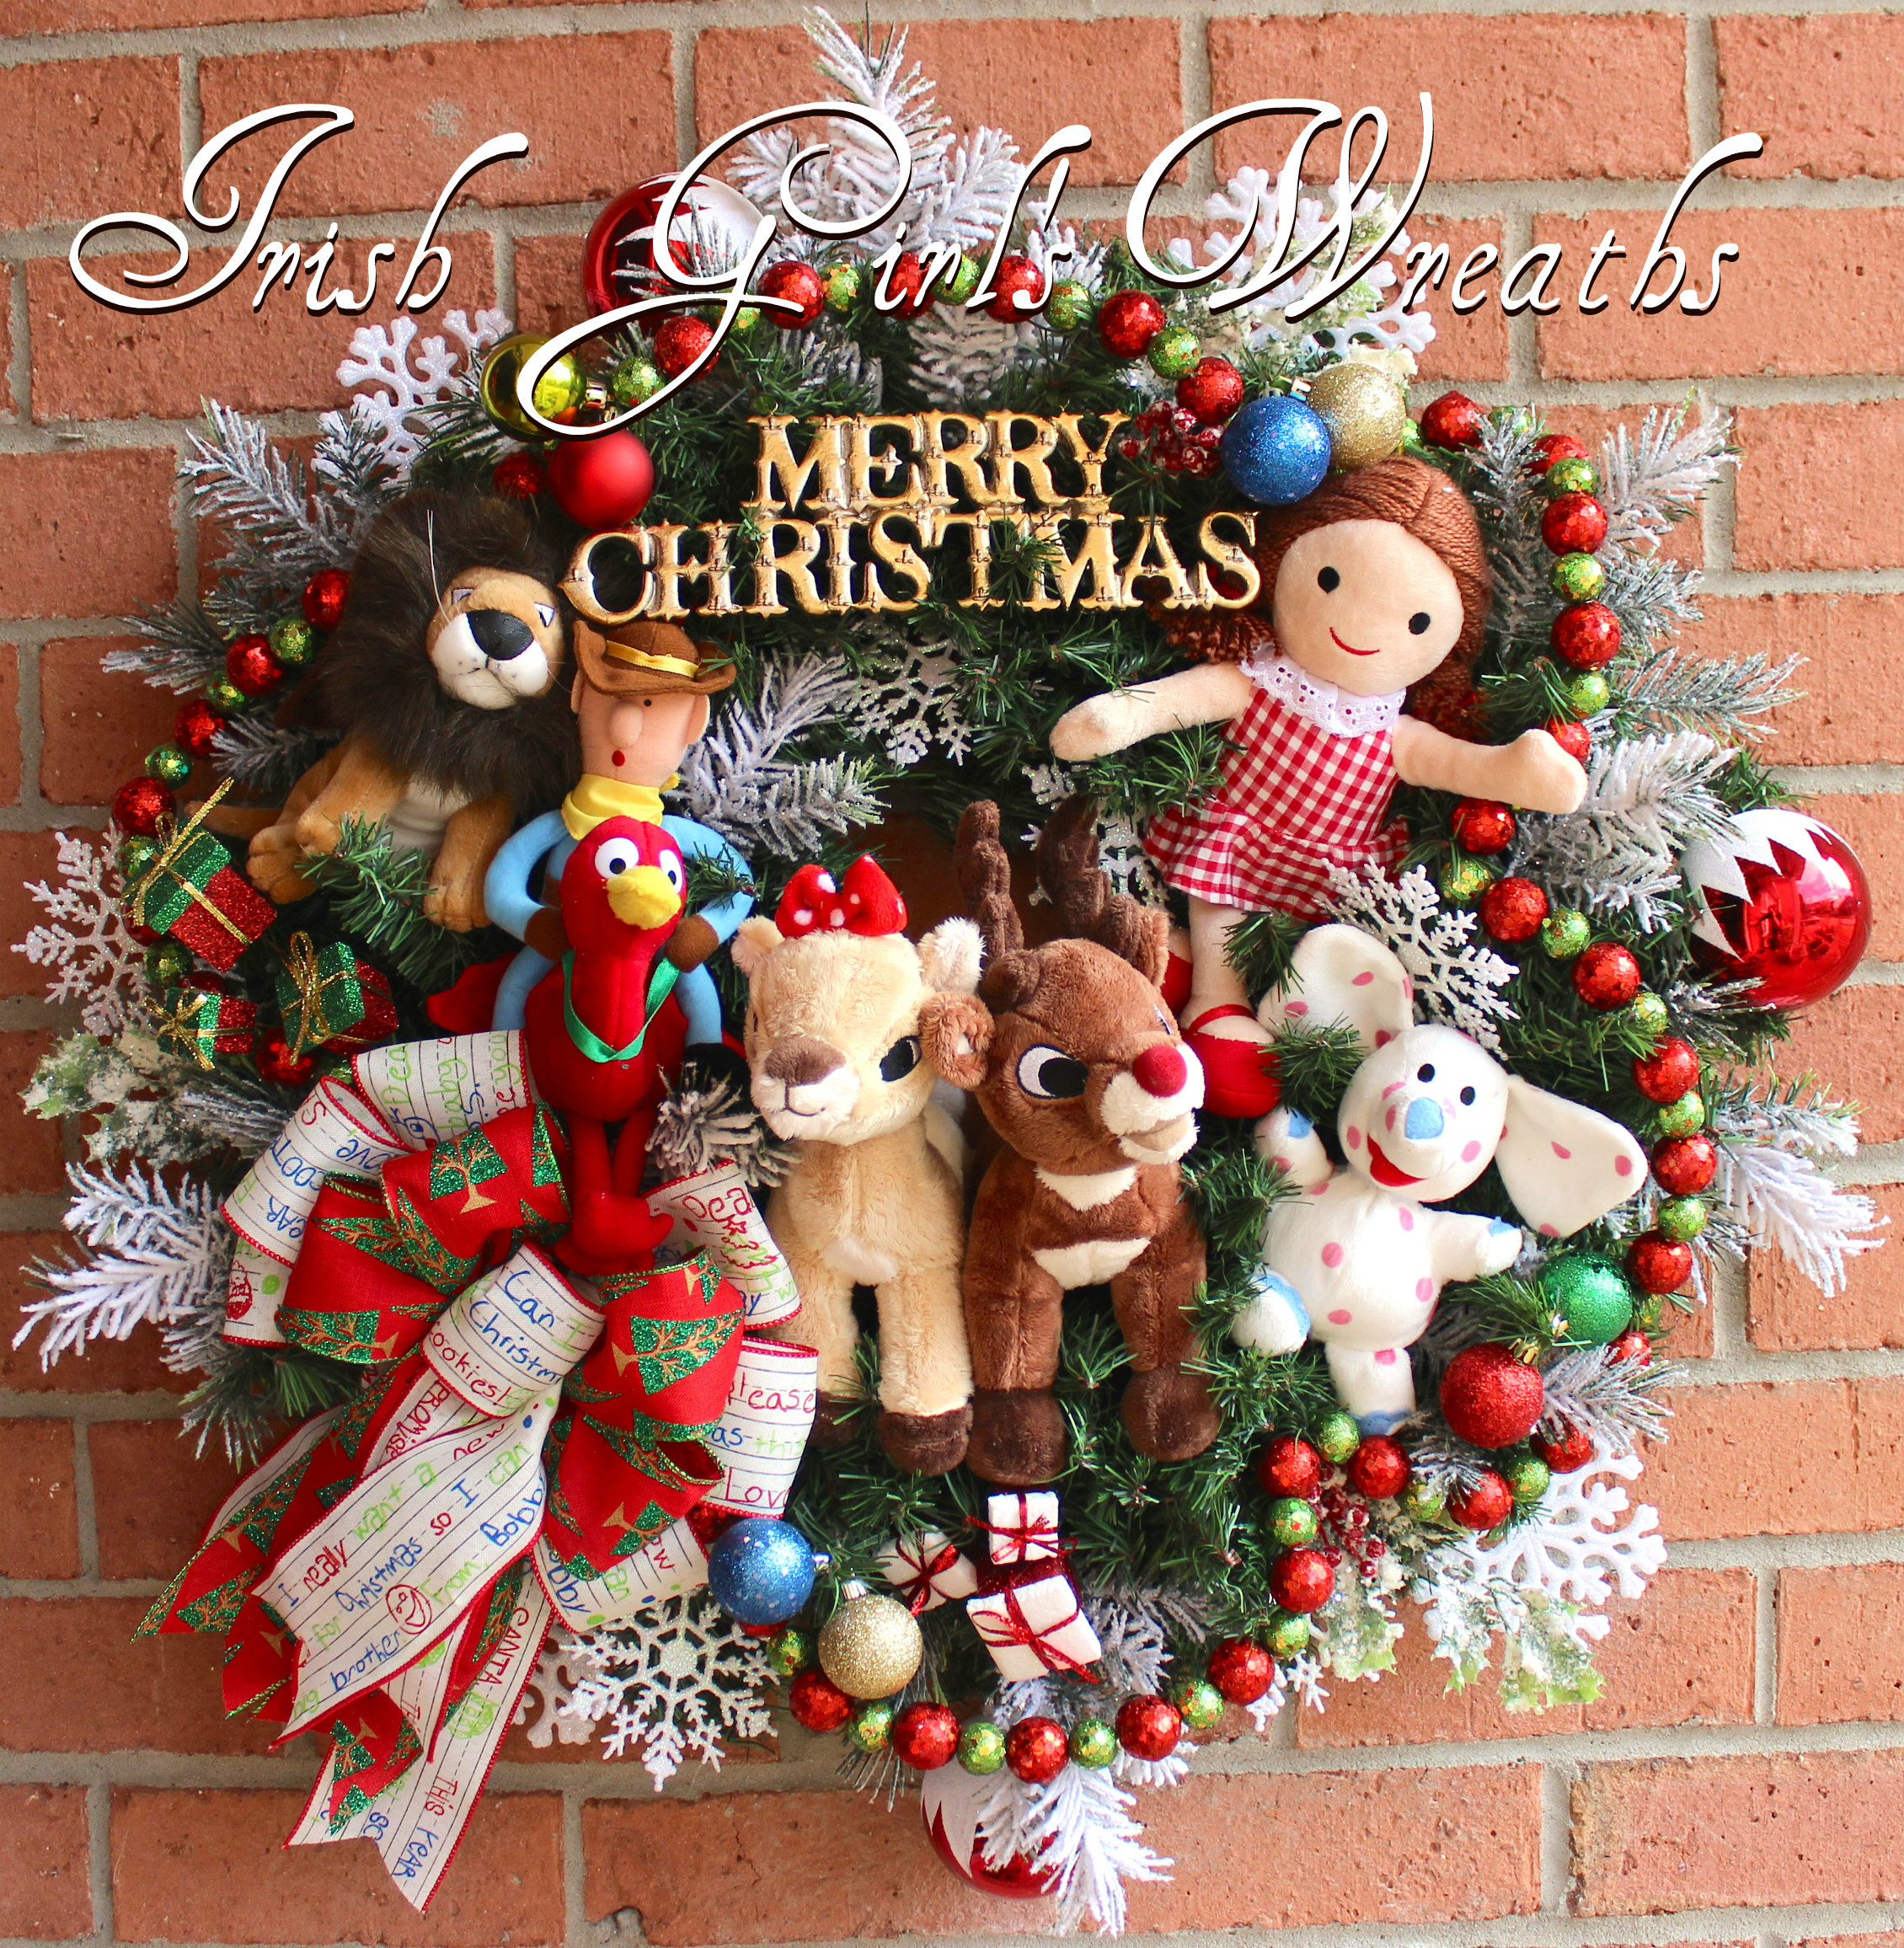 Ultimate Rudolph, Clarice and Misfit Toys Christmas Wreath